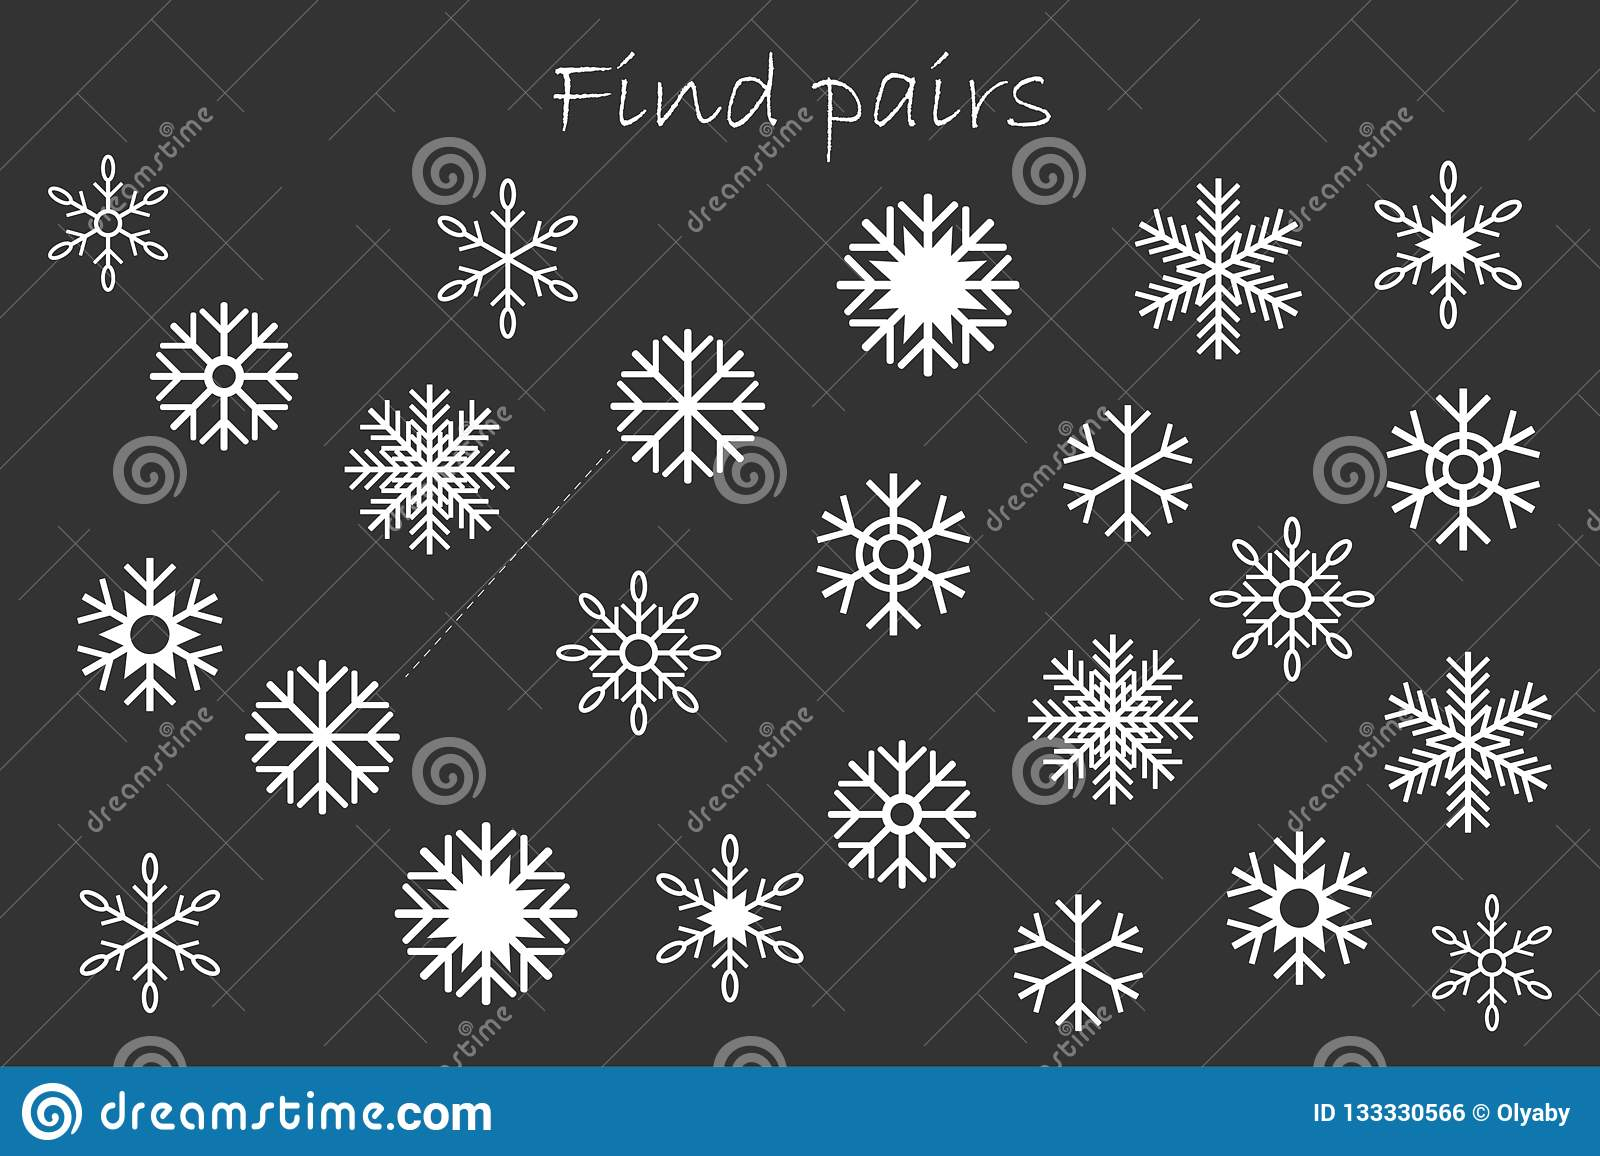 Find Pairs Of Identical Pictures Christmas Fun Education